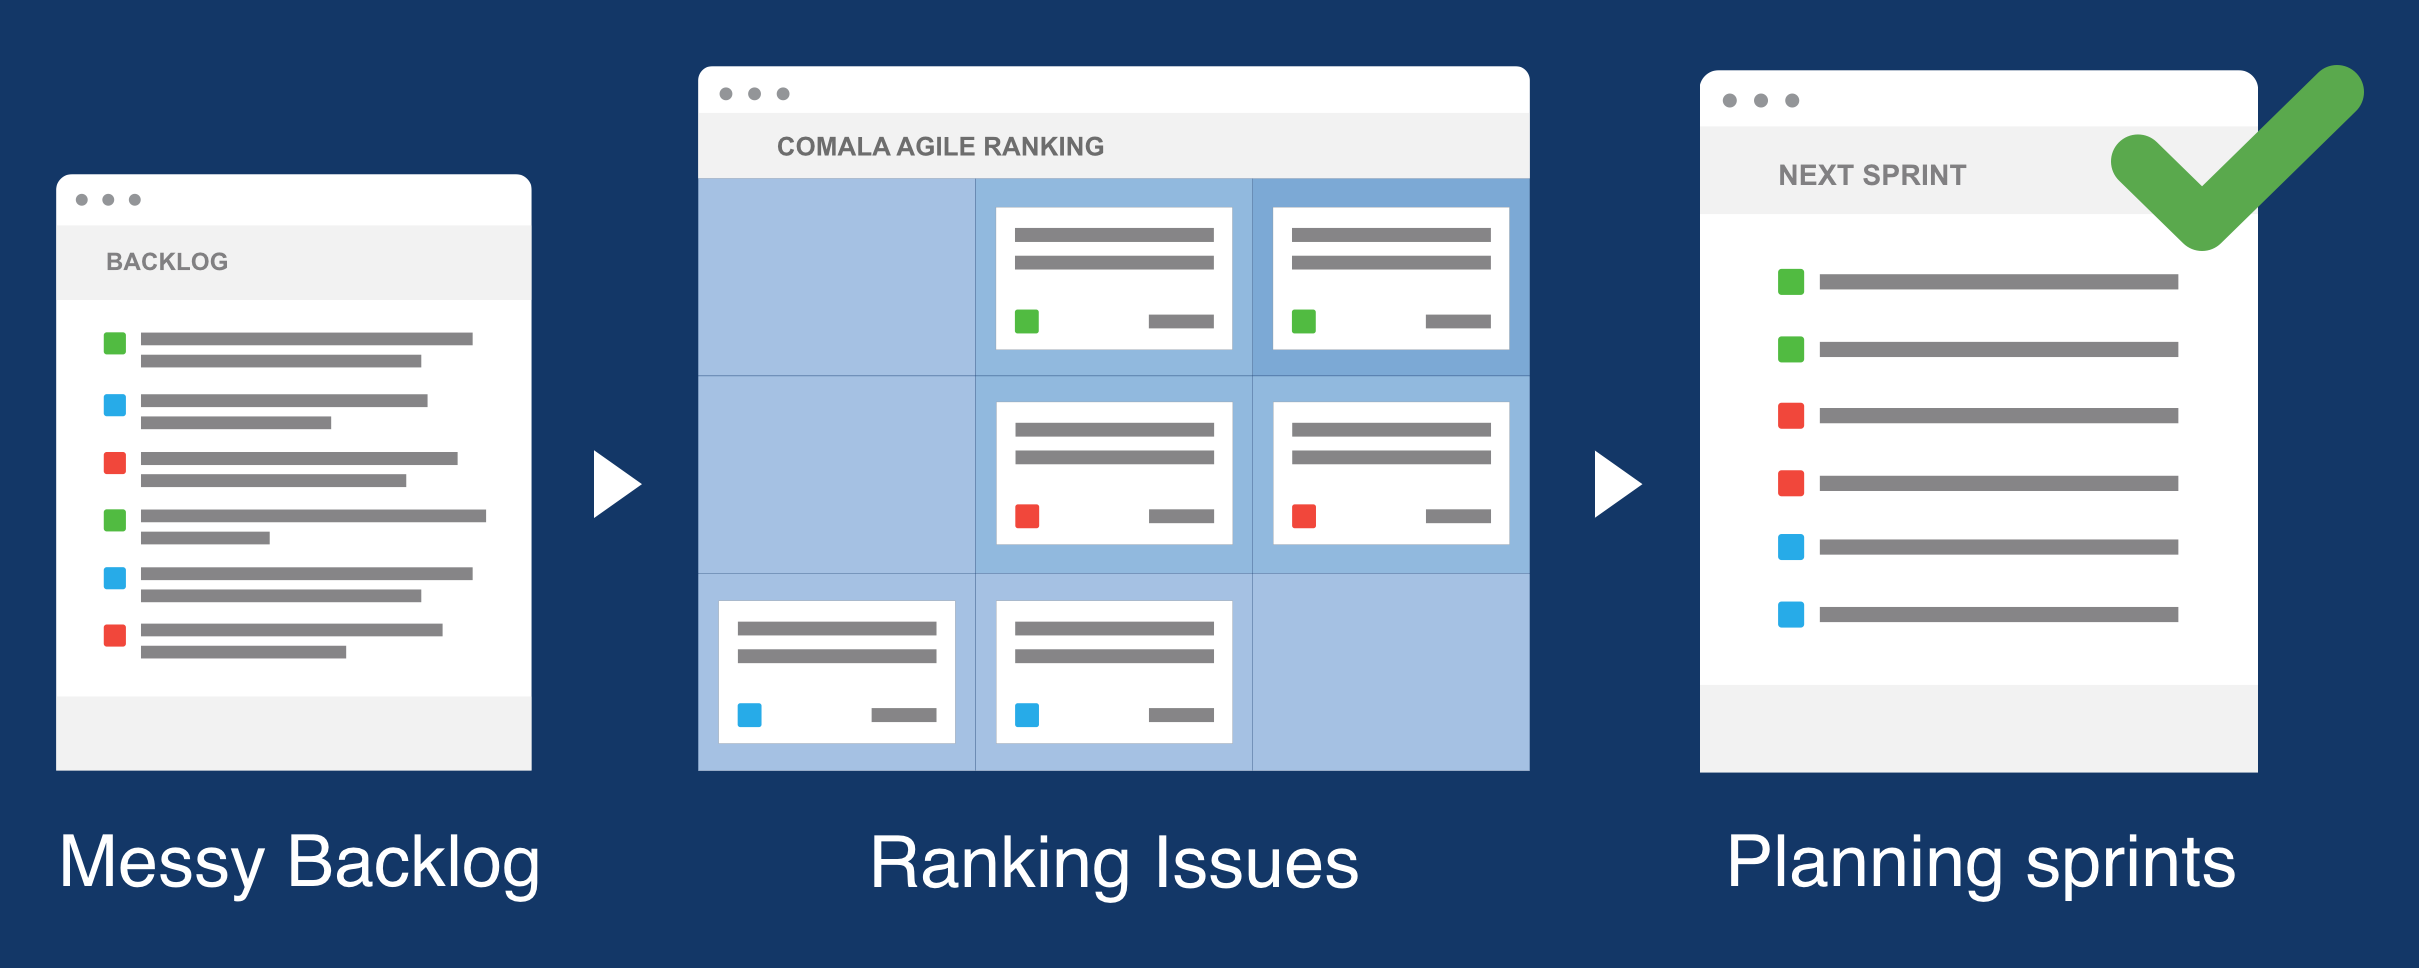 Getting Started With Agile Ranking Agile Ranking Comalatech